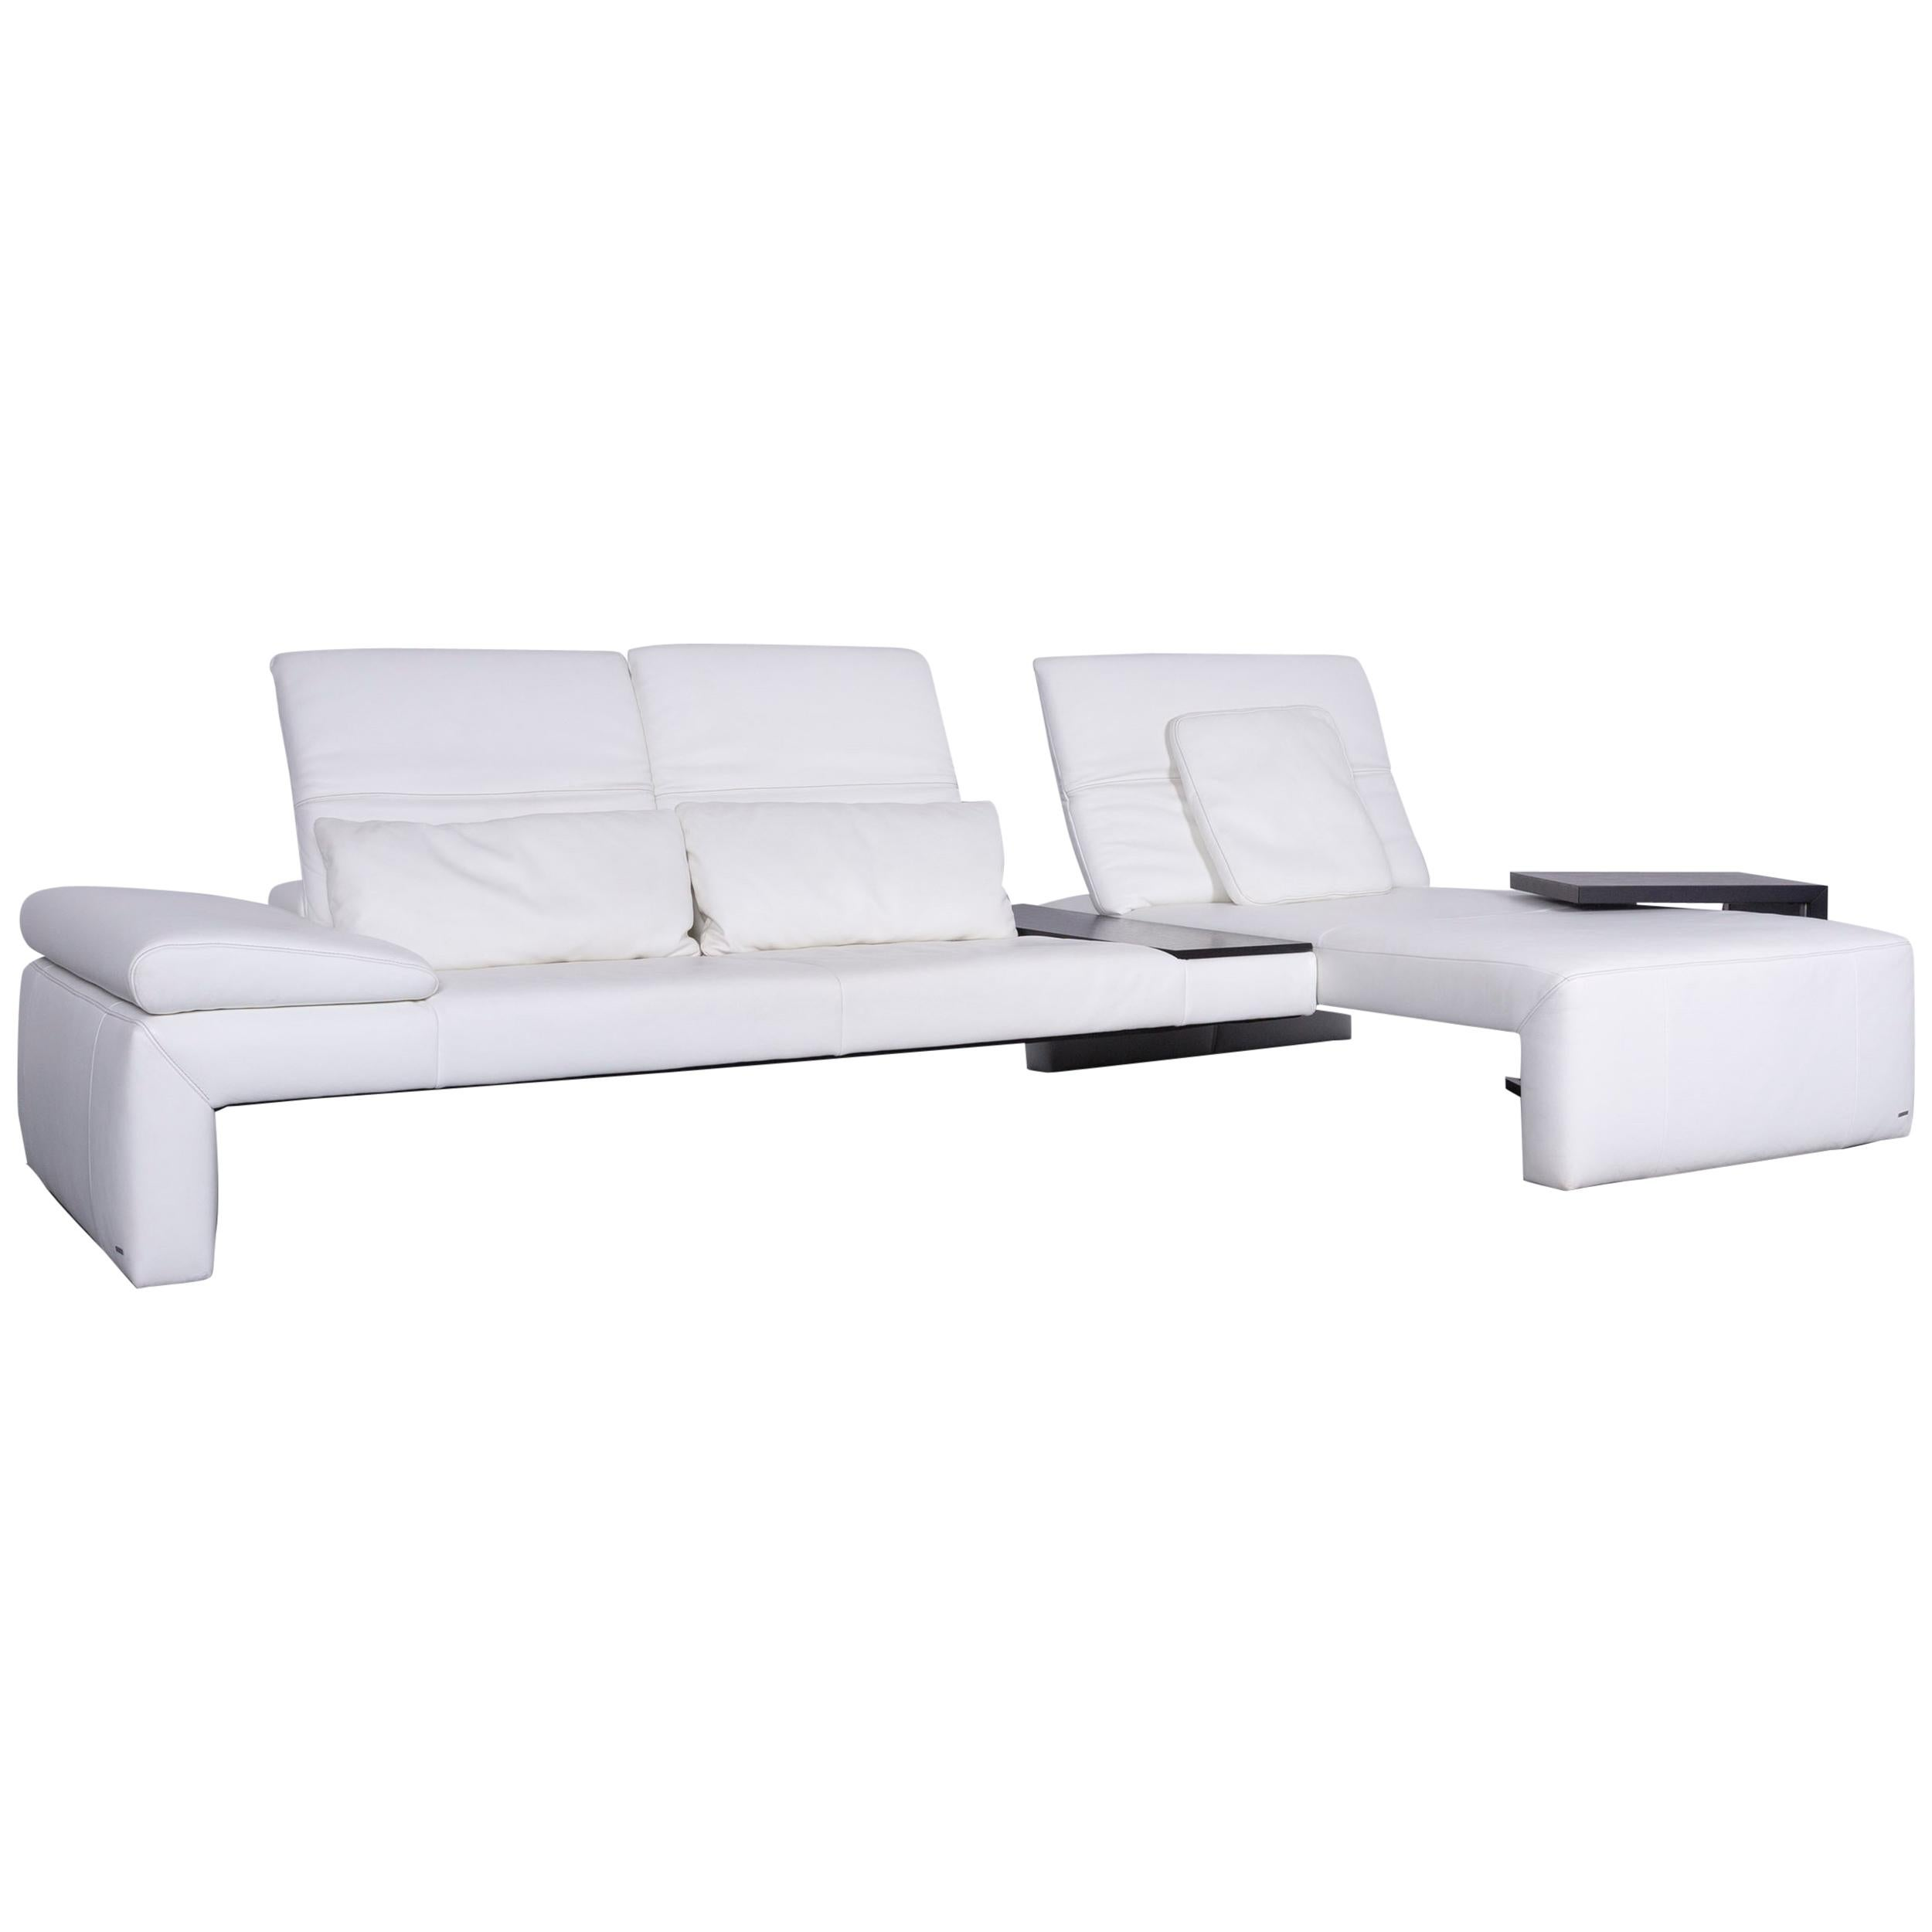 Koinor Designer Leather Corner Sofa In White With Functions